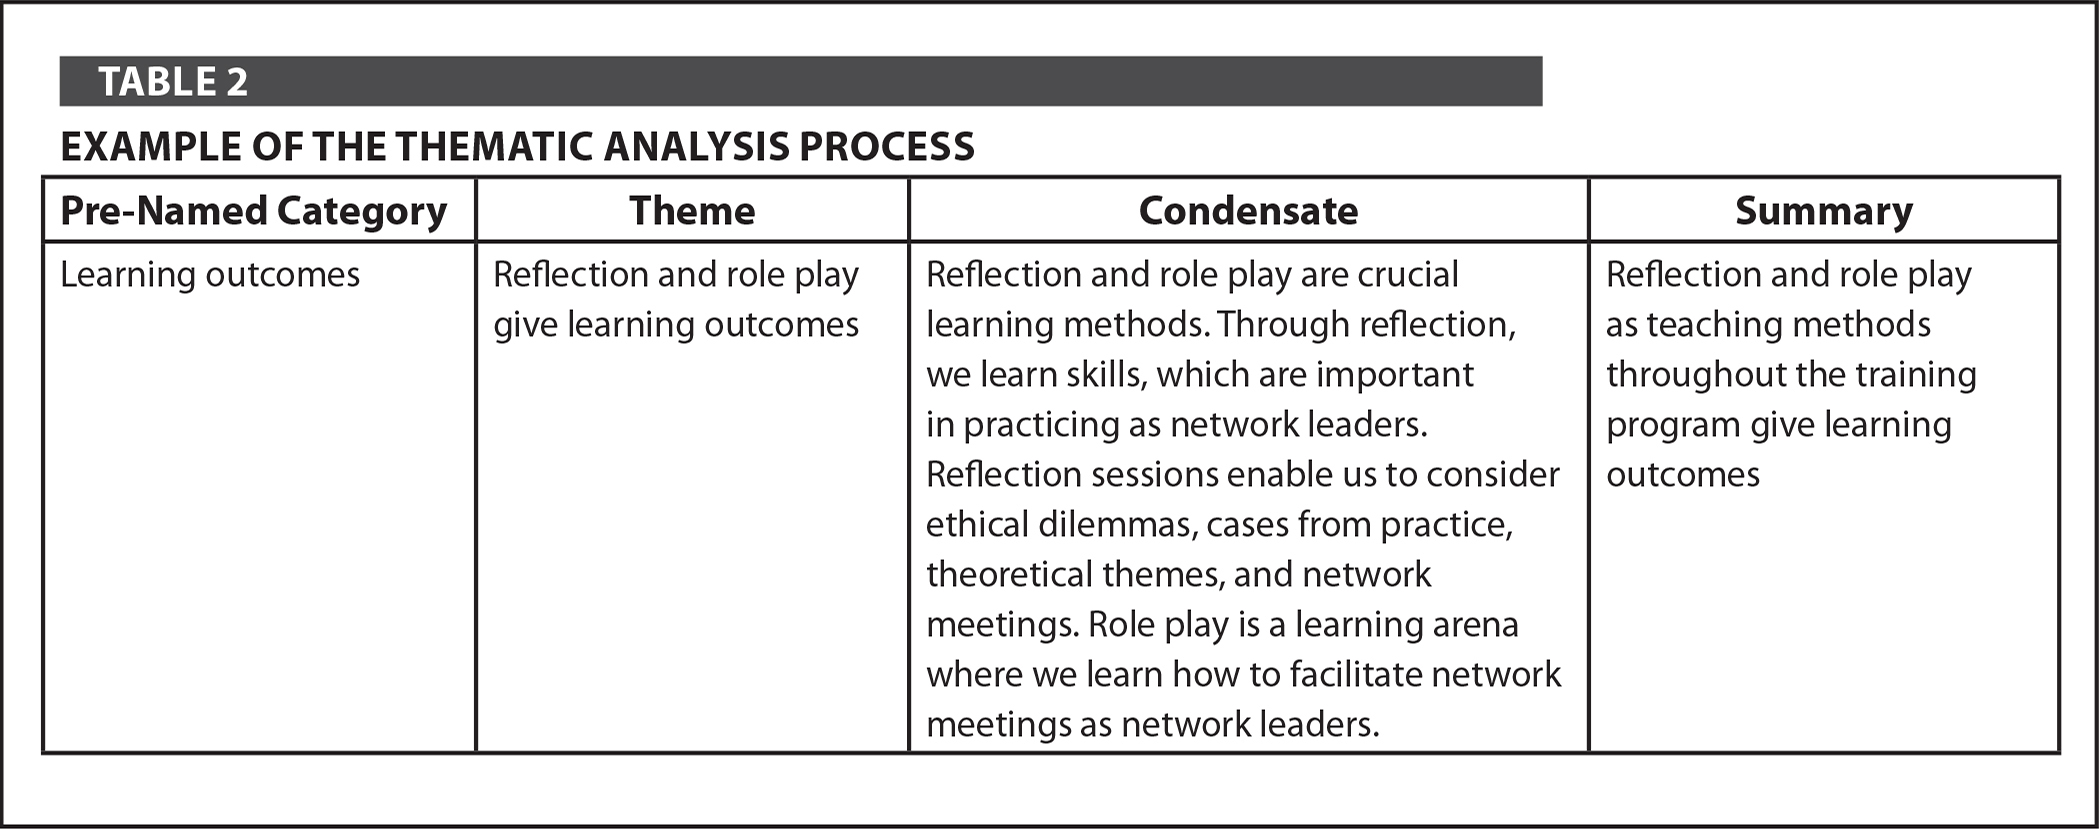 Example of the Thematic Analysis Process